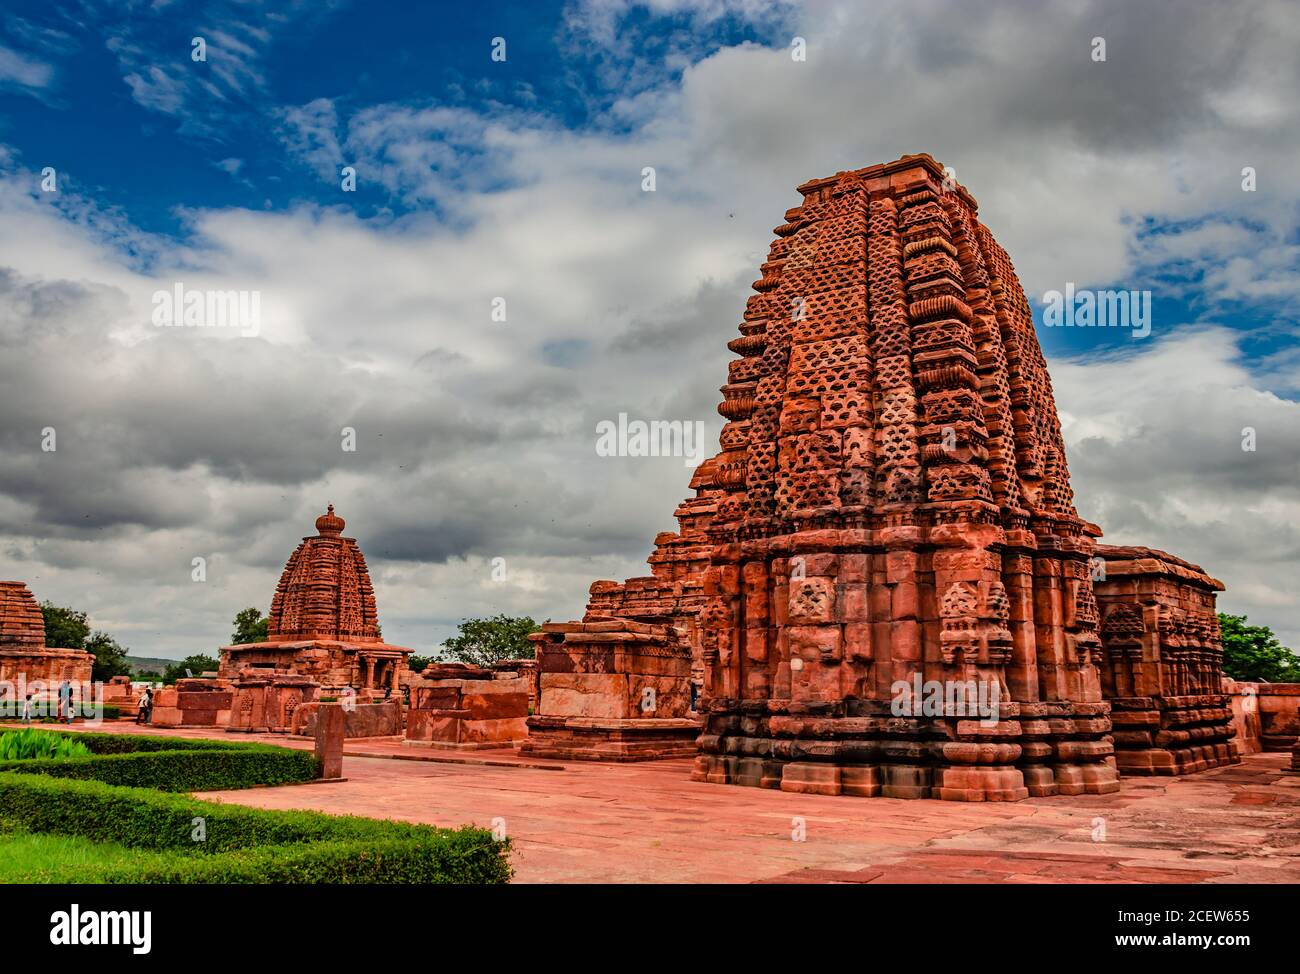 pattadakal temple group of monuments breathtaking stone art from different angle with amazing sky. It's one of the UNESCO World Heritage Sites and com Stock Photo